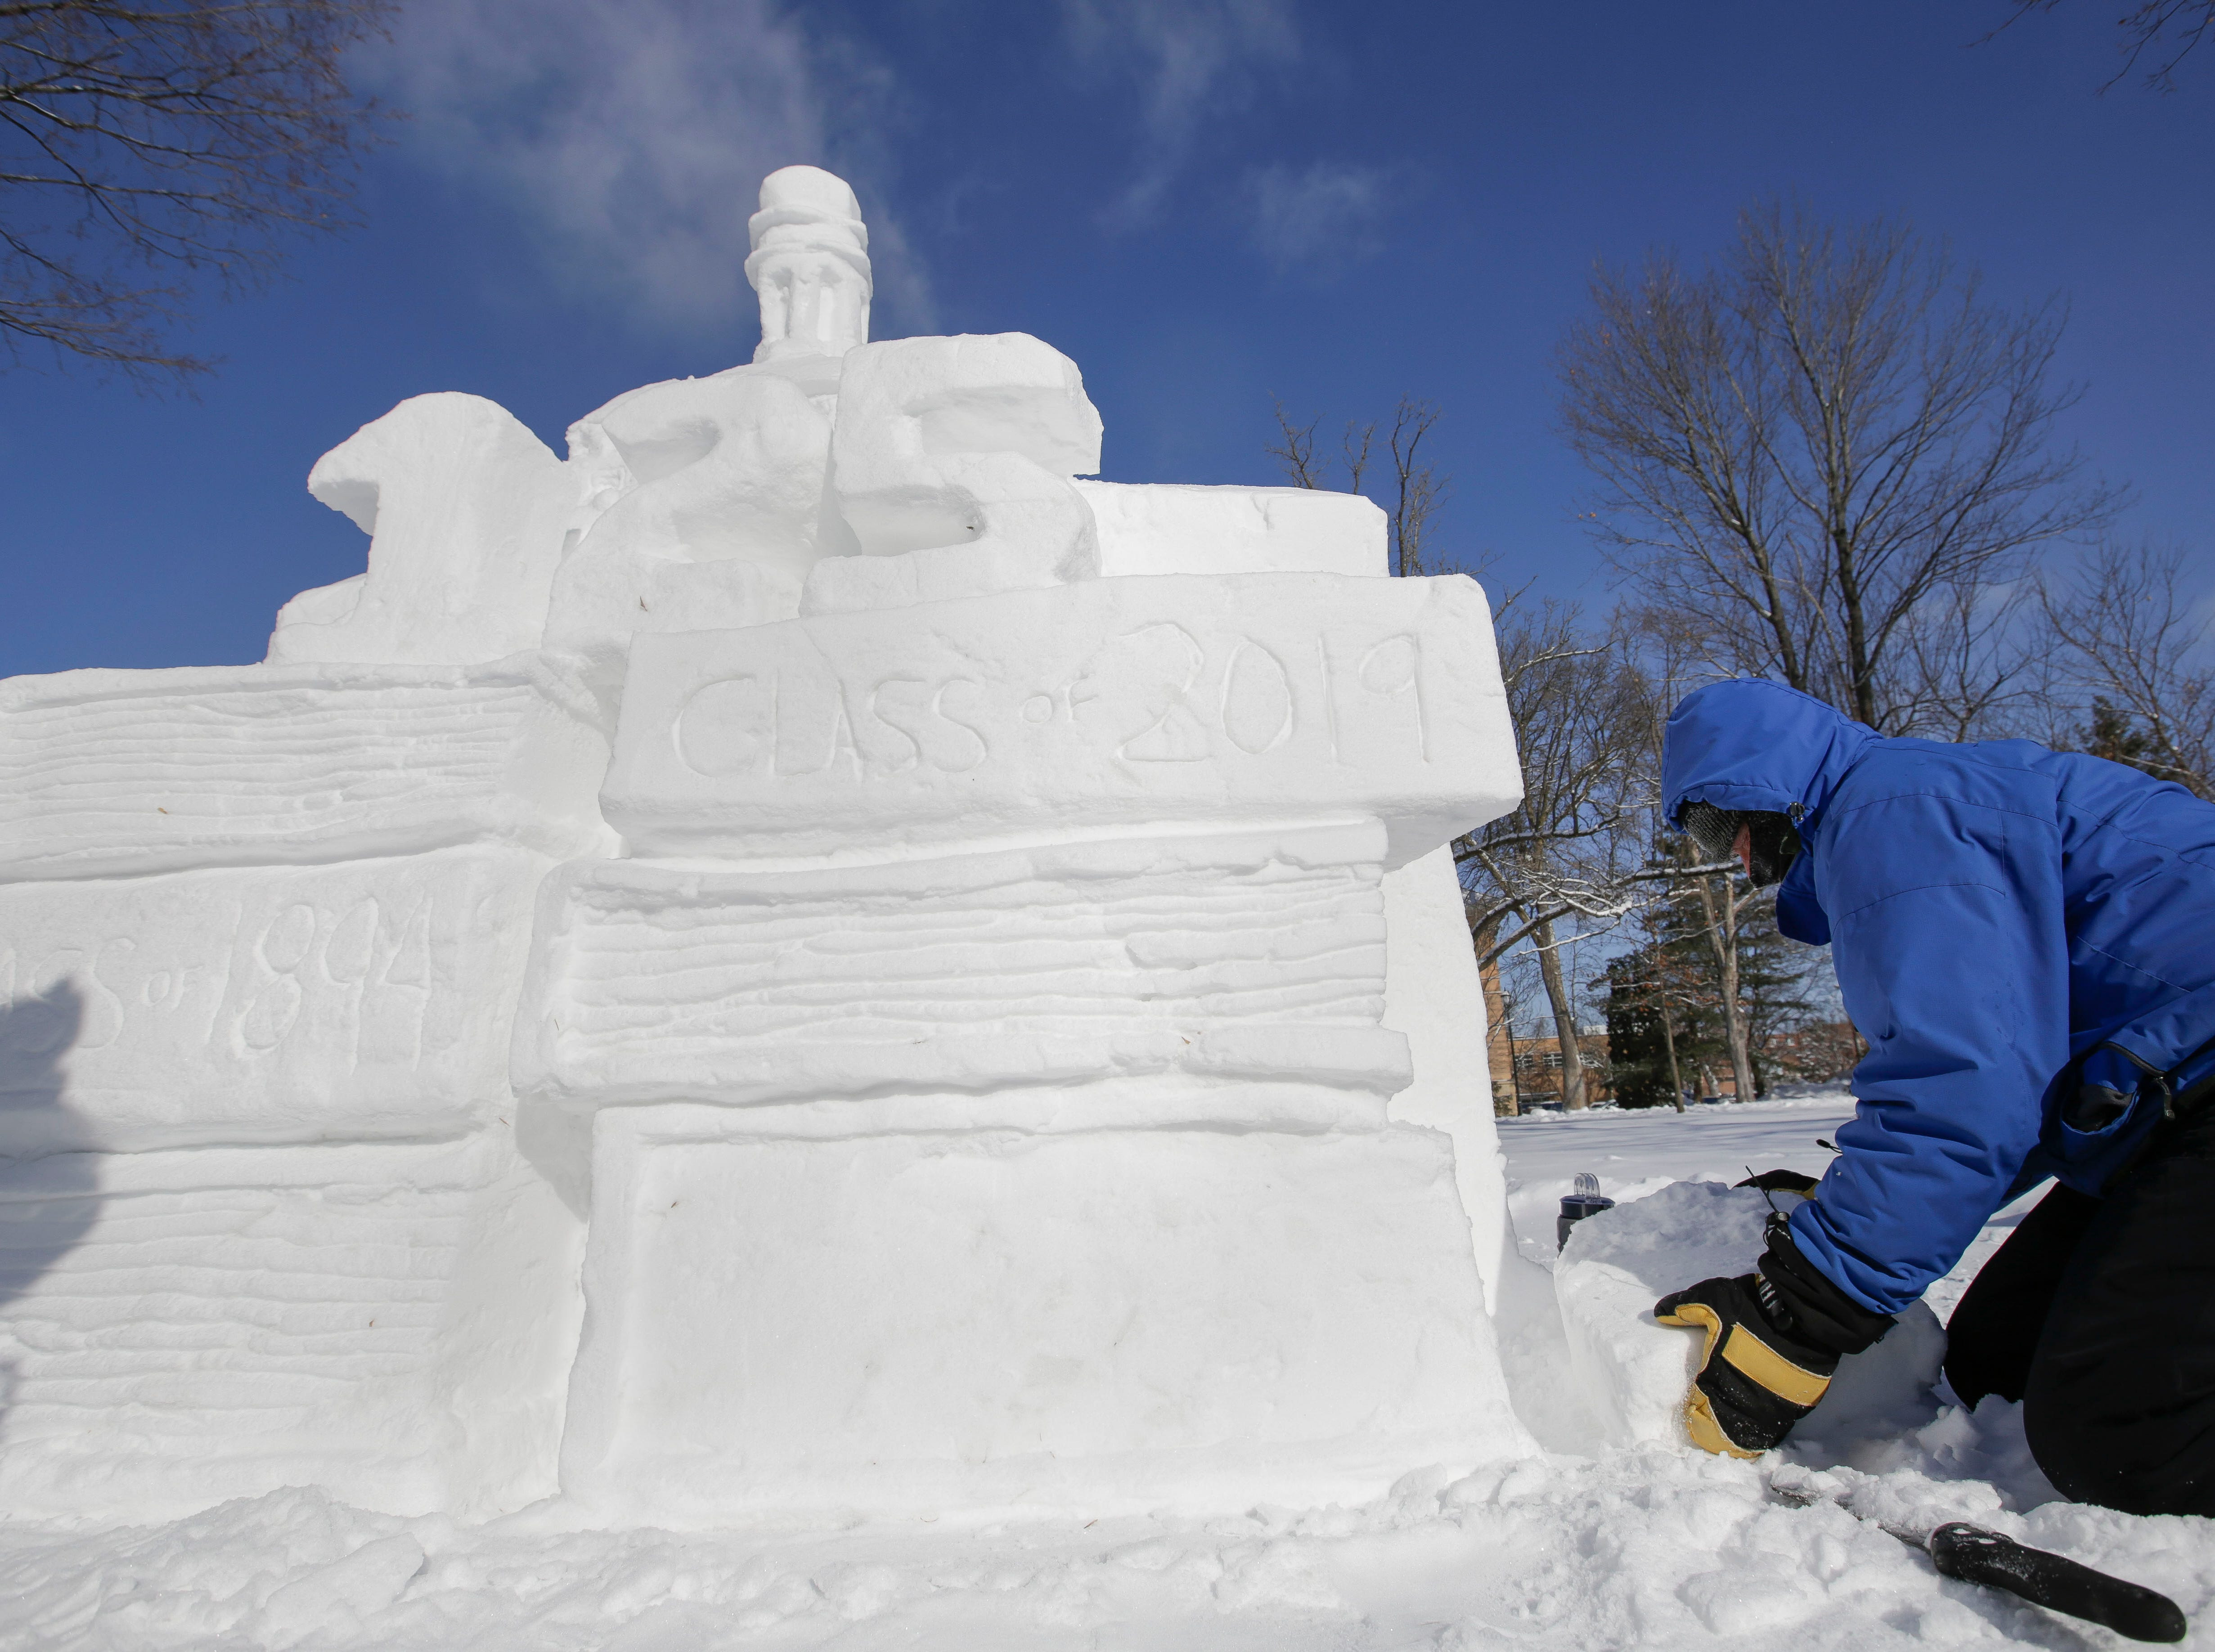 Local artist Jef Schobert works on a sculpture on Friday, February 8, 2019, on the UWSP campus in Stevens Point, Wis. The sculpture is to commemorate UWSP's 125th anniversary.Tork Mason/USA TODAY NETWORK-Wisconsin